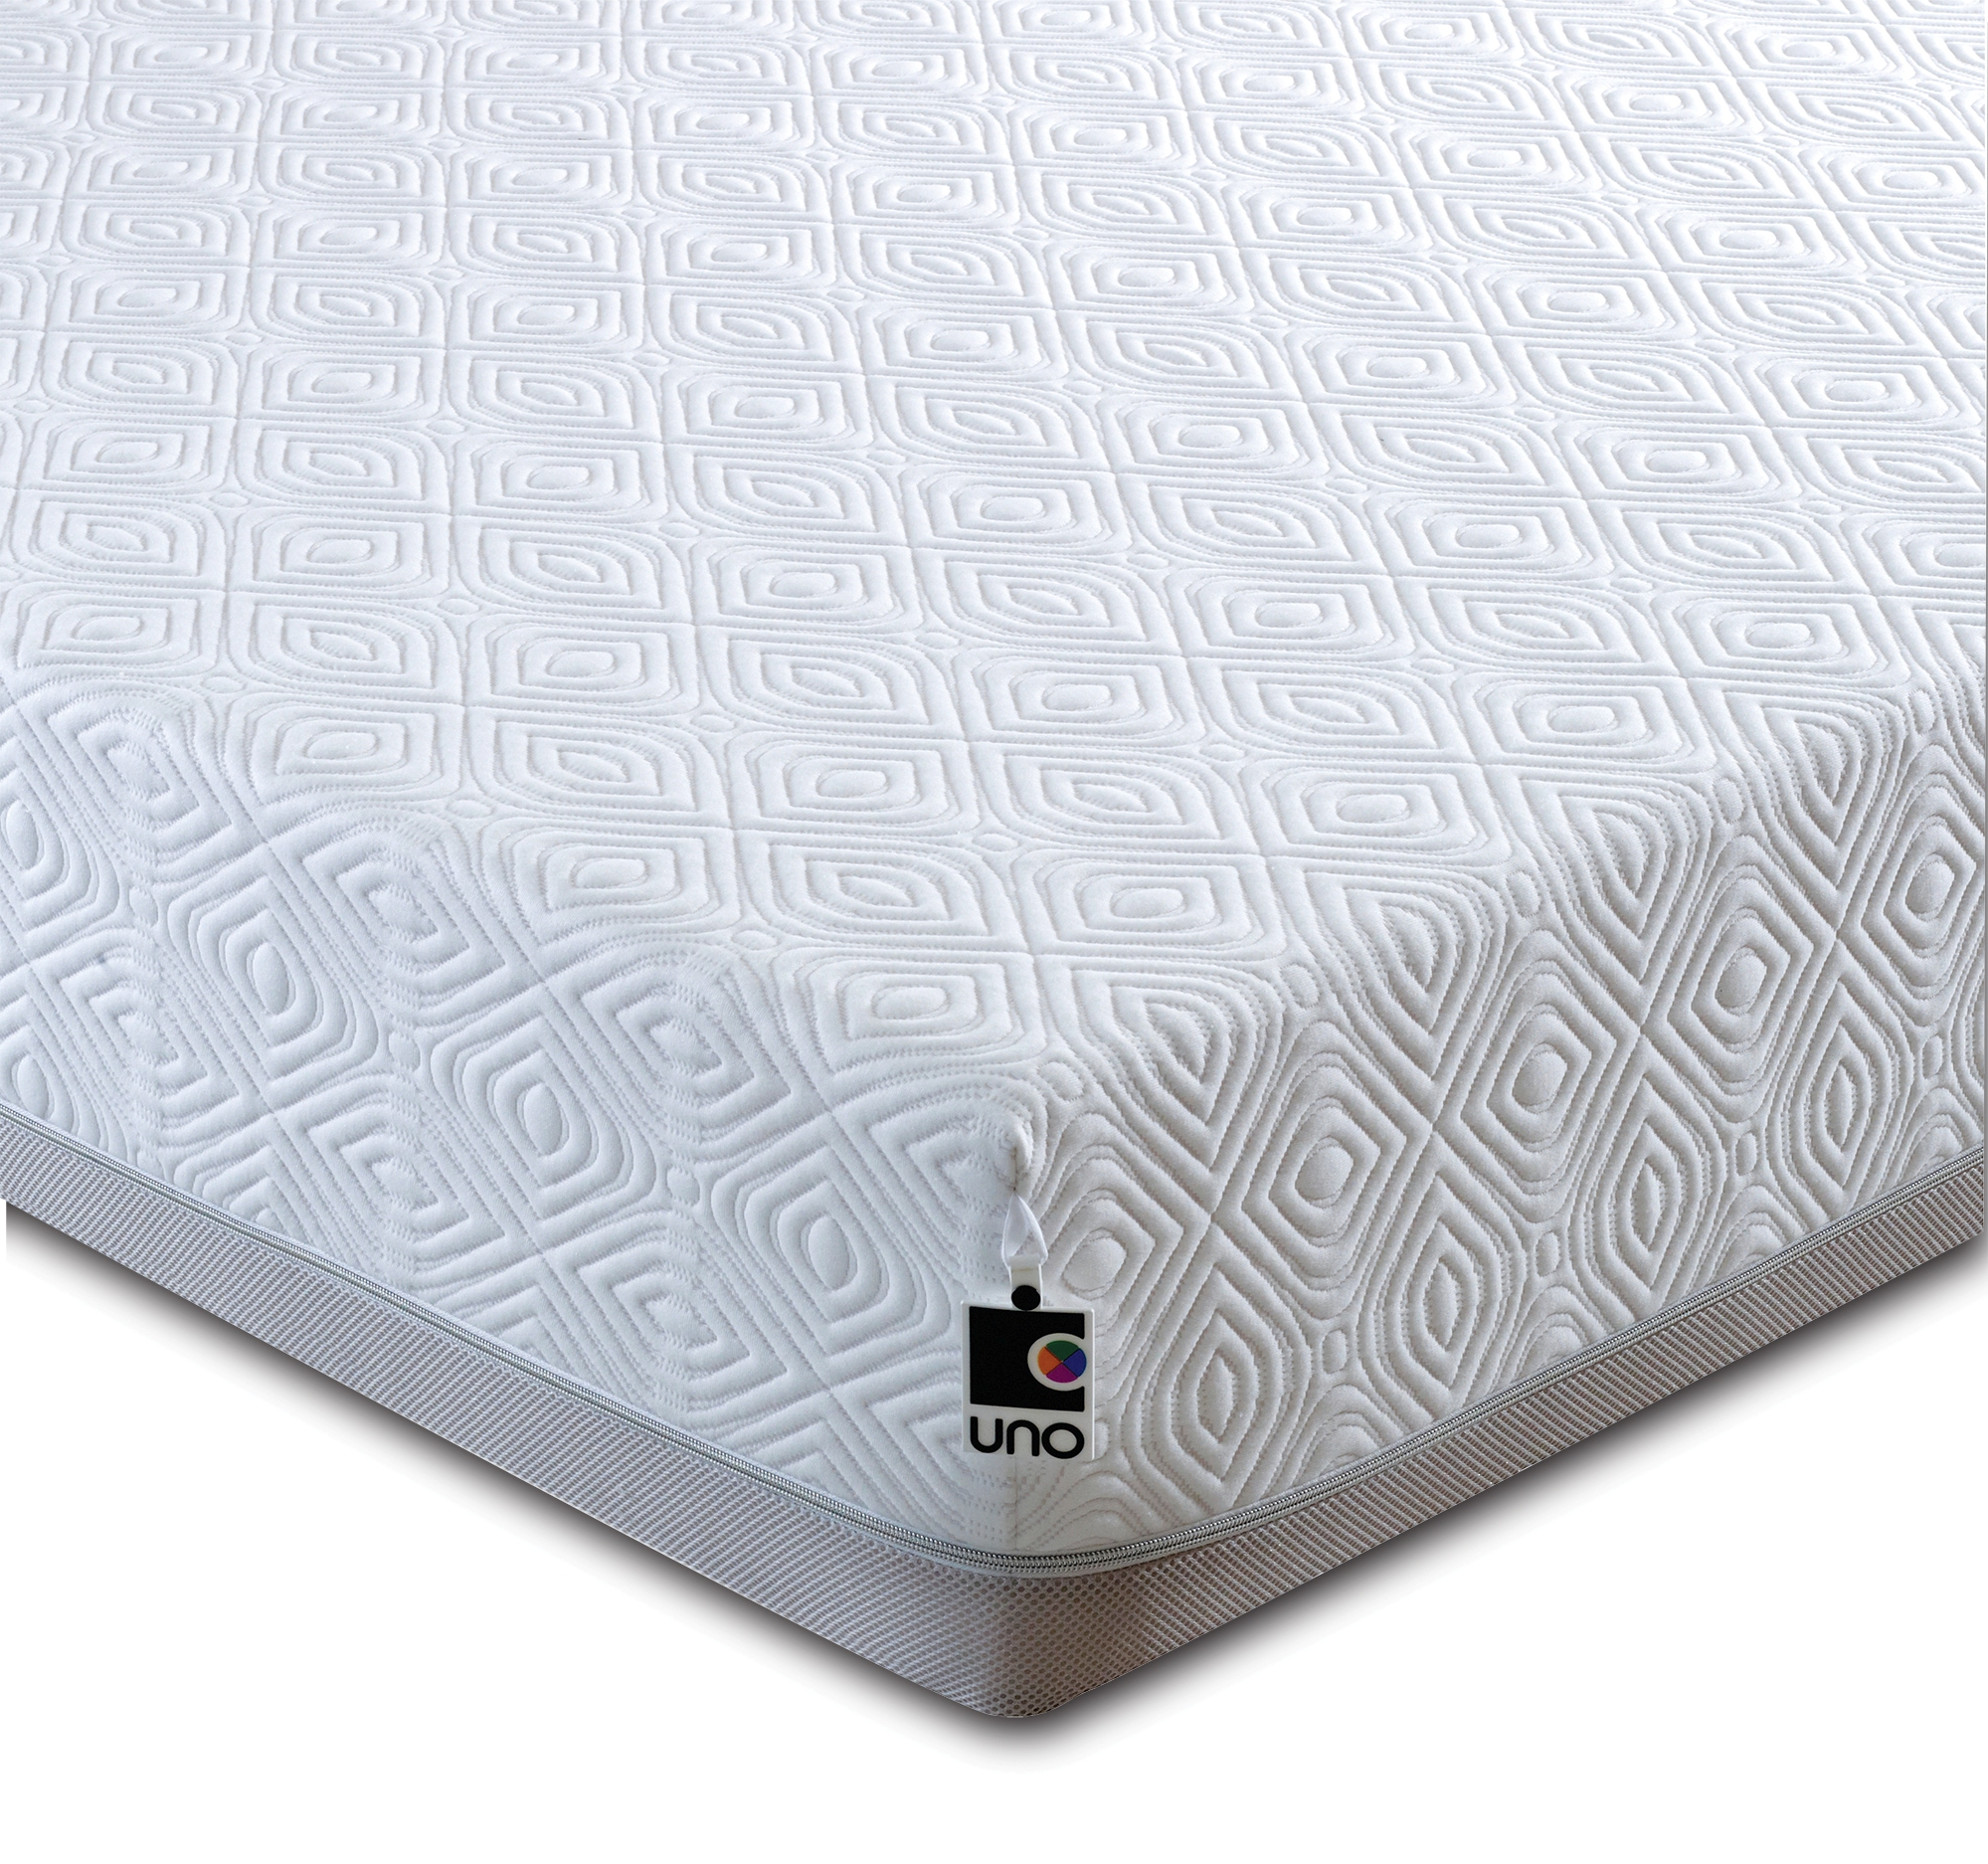 Uno single pocket 2000 memory mattress